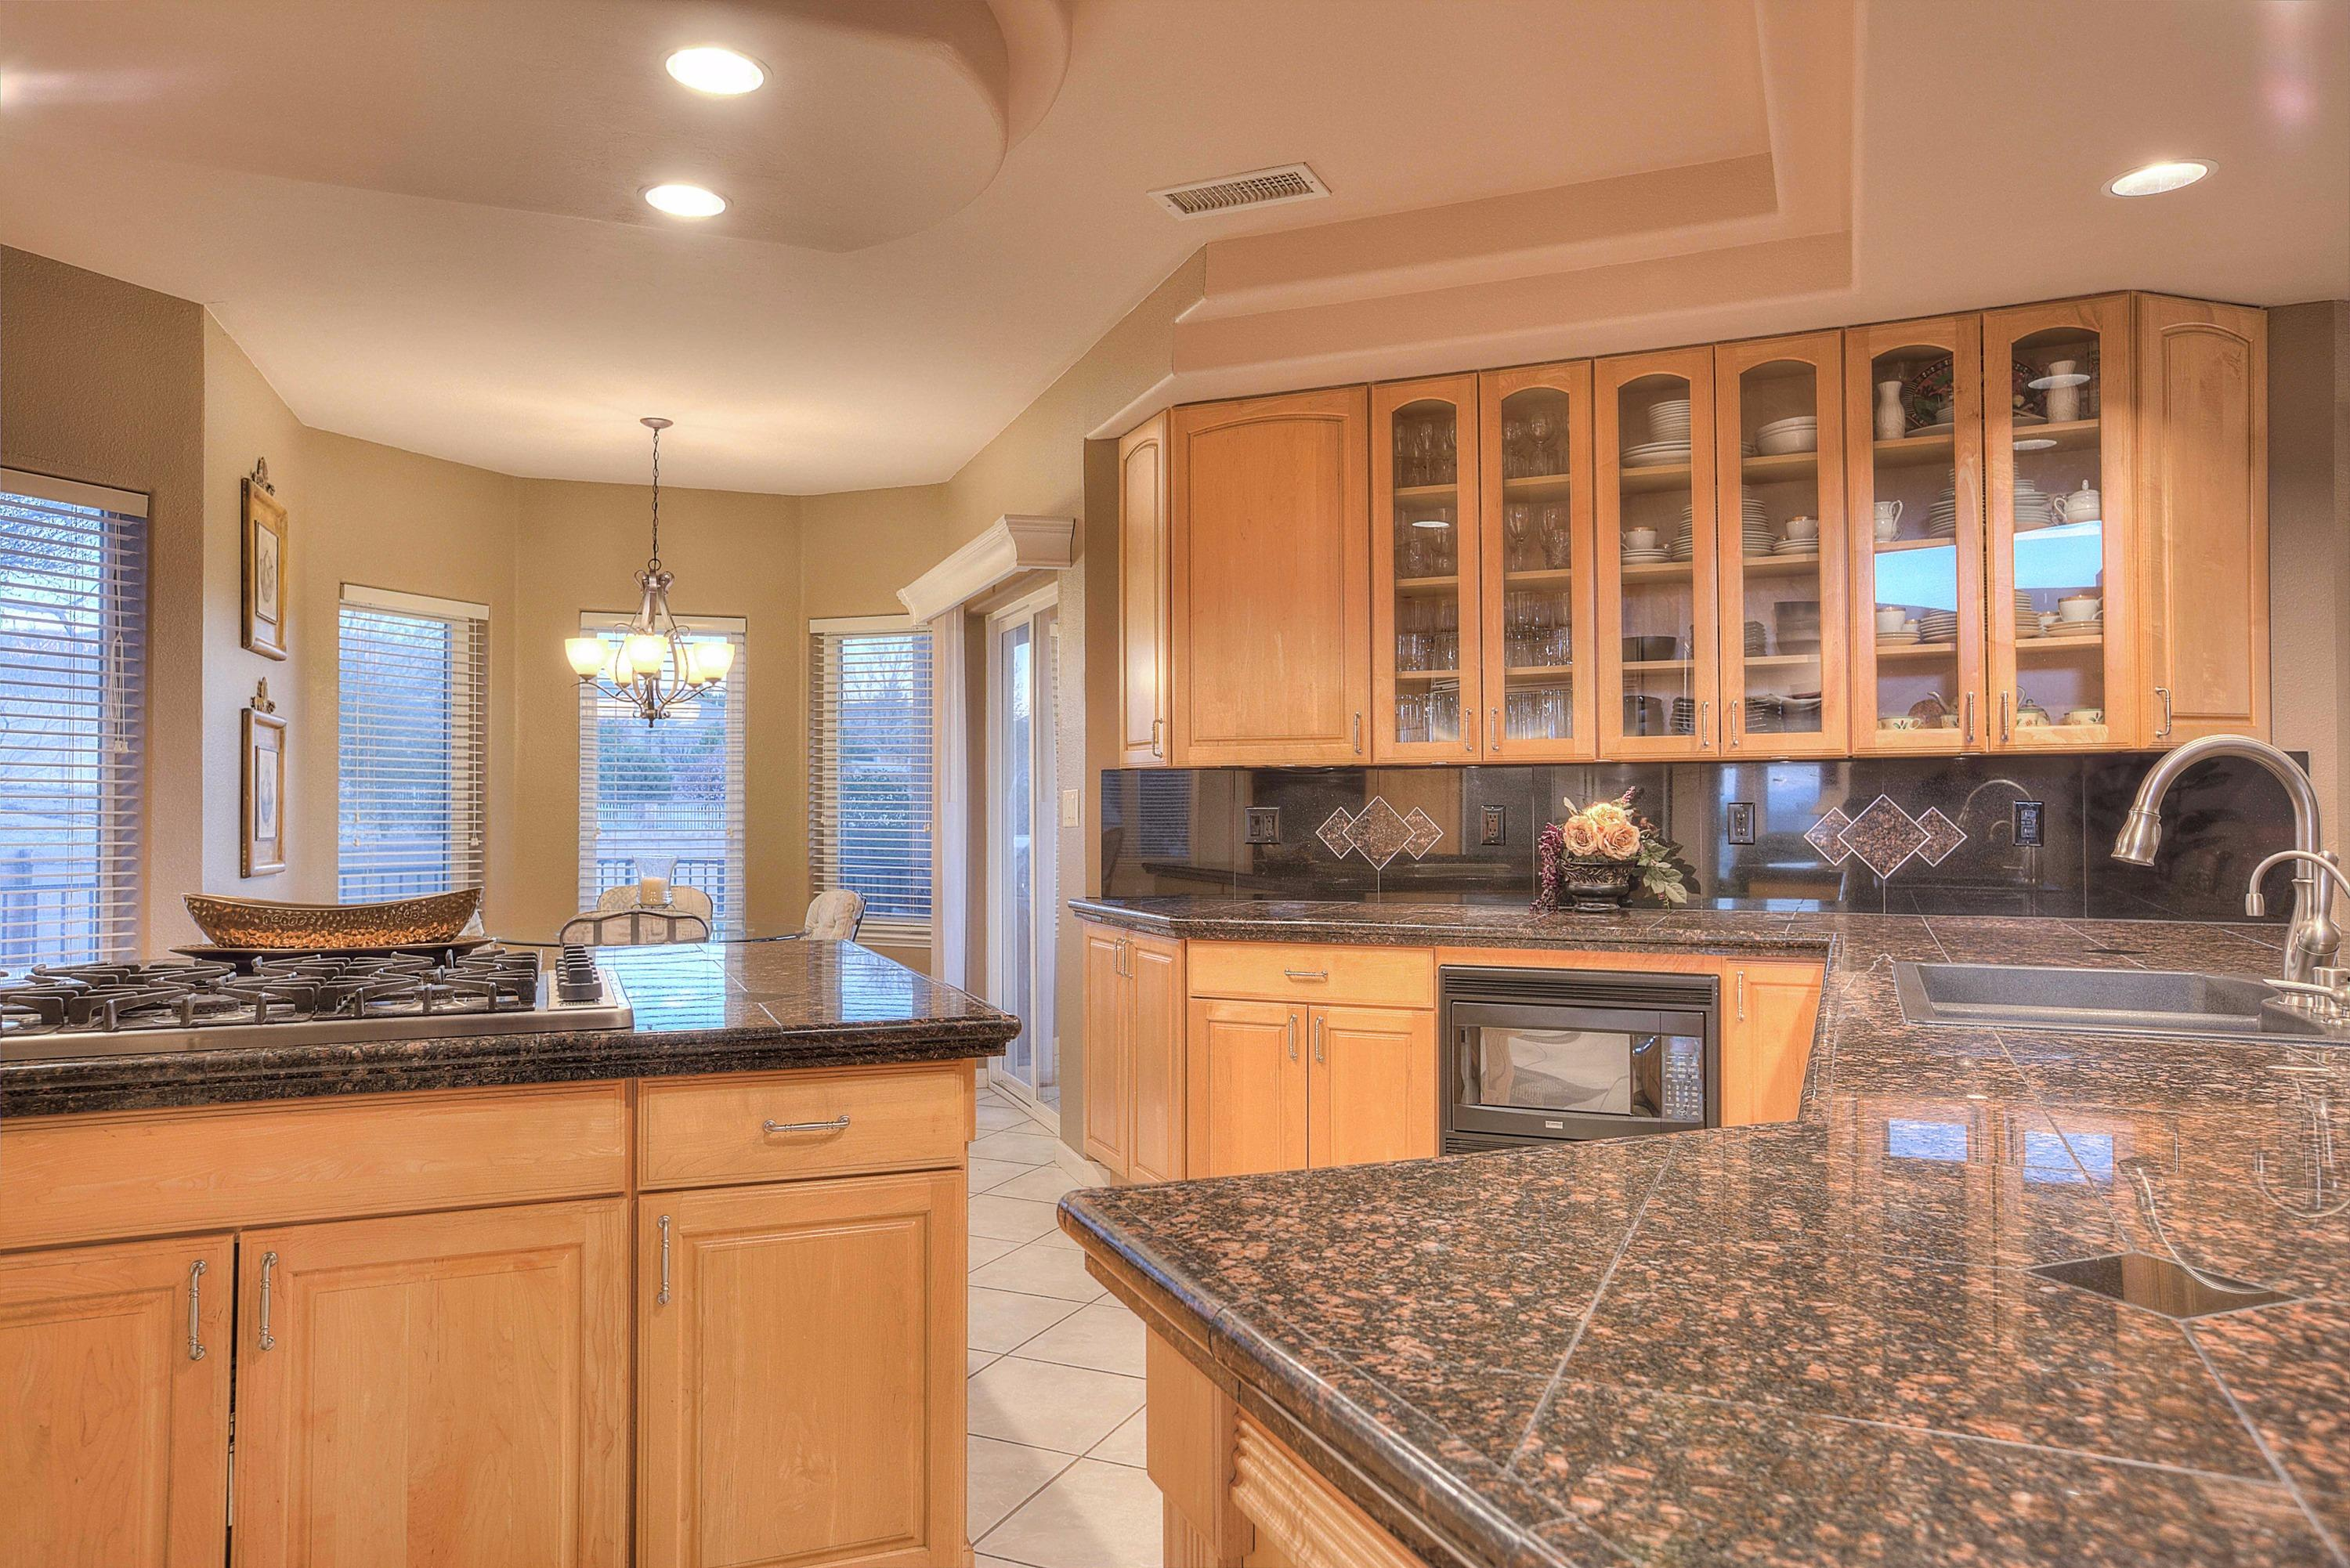 Awesome Kitchen Remodel